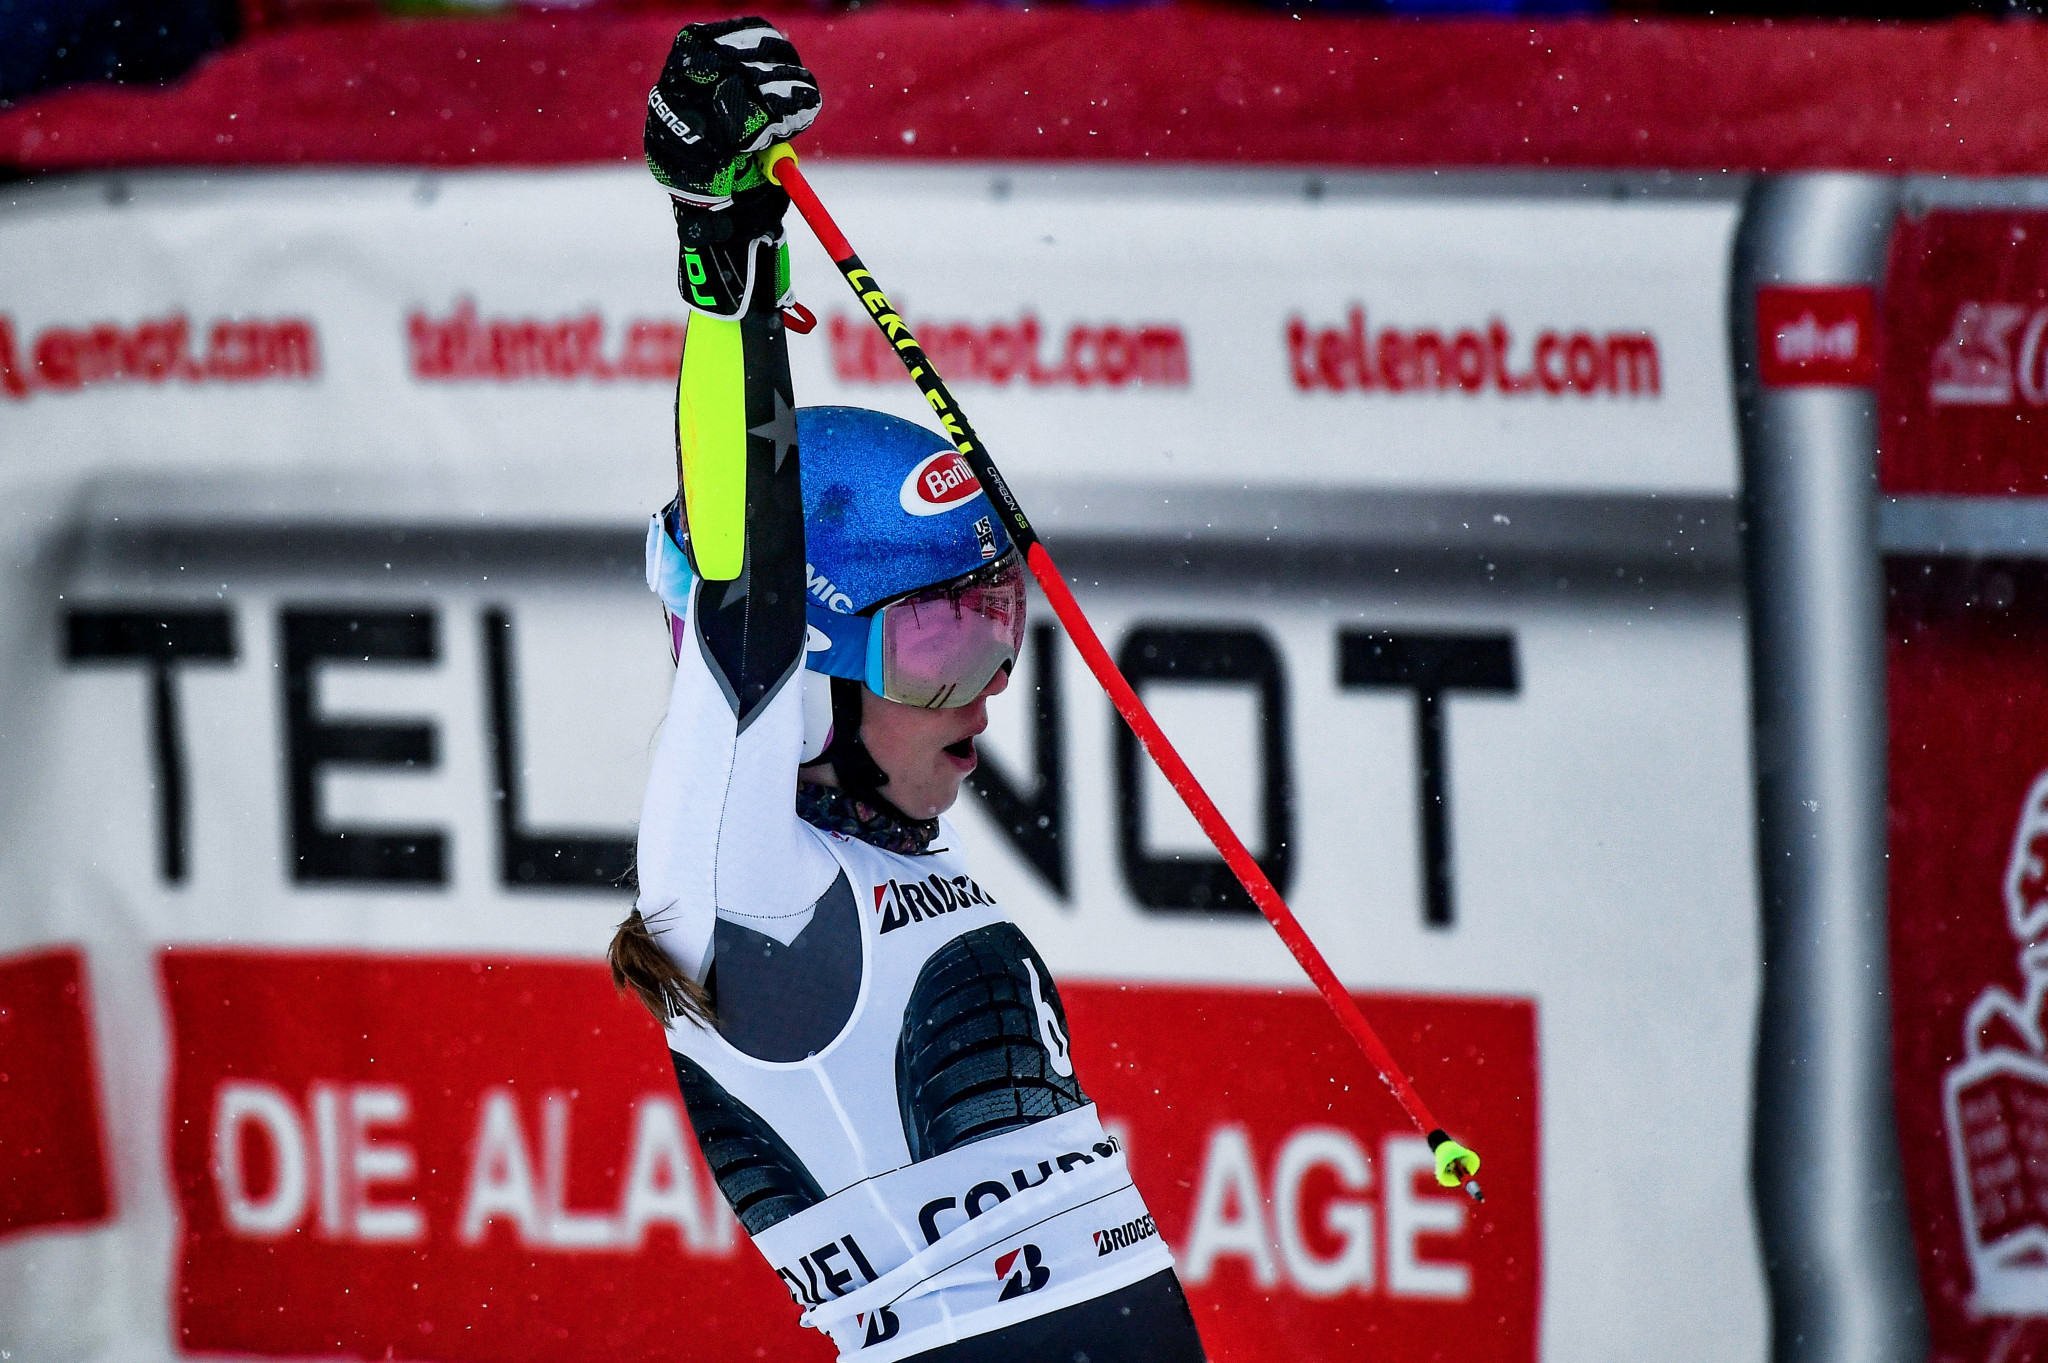 Mikaela Shiffrin has shown her dominance once again to win giant slalom gold in Courchevel ©Getty Images